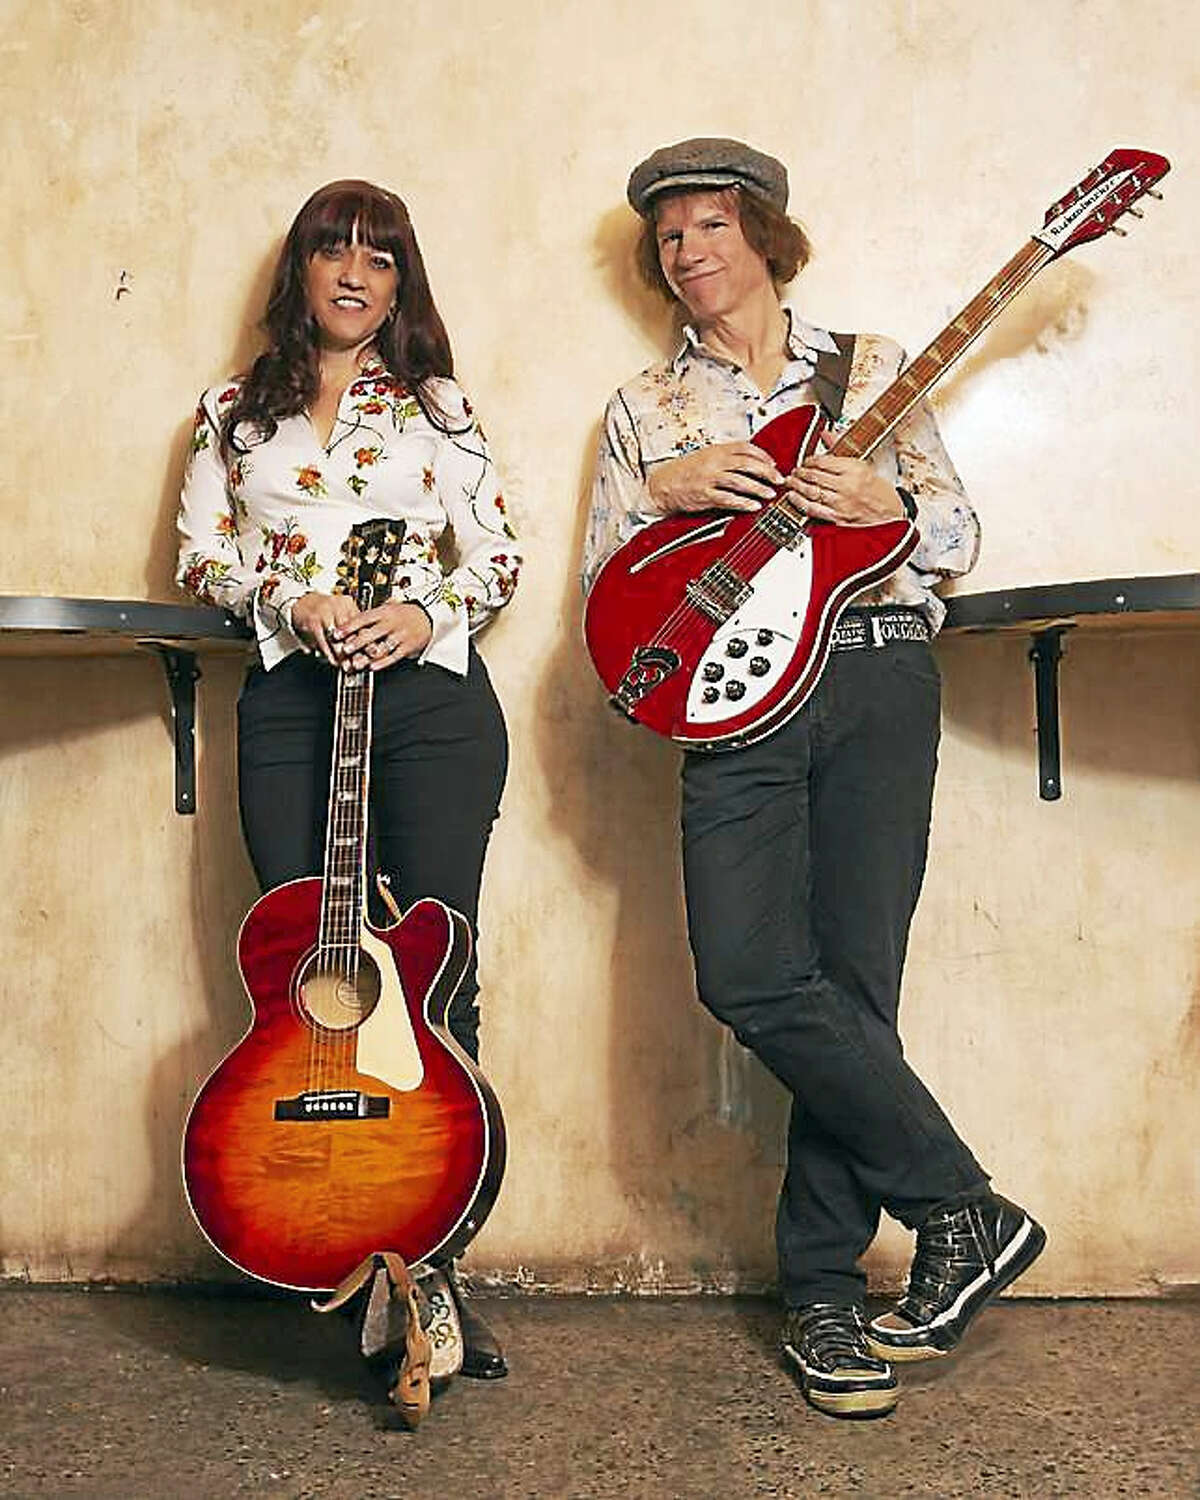 Photo by Kim NicholaisThe Kennedys bring their individual folk sound to the Buttonwood Tree on Saturday, March 26.